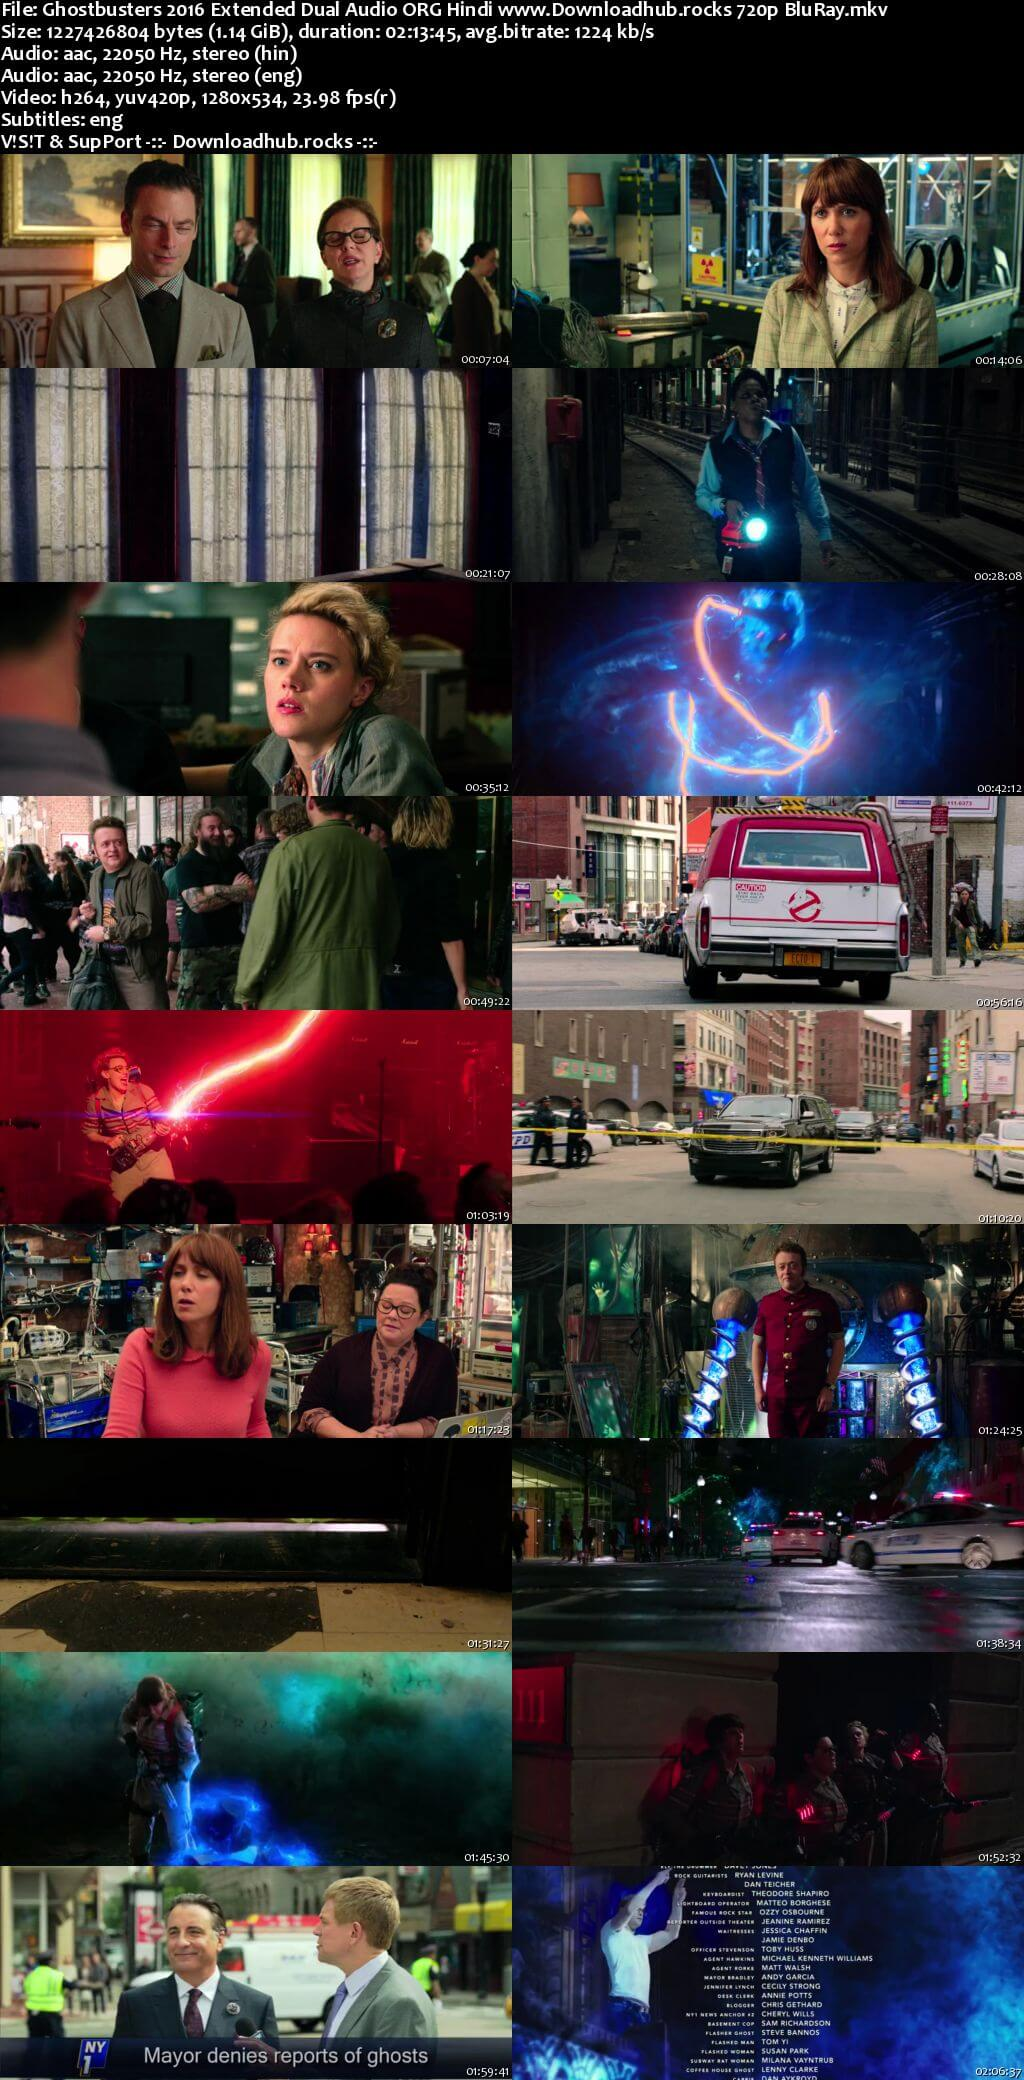 Ghostbusters 2016 Hindi Dual Audio 720p EXTENDED BluRay ESubs